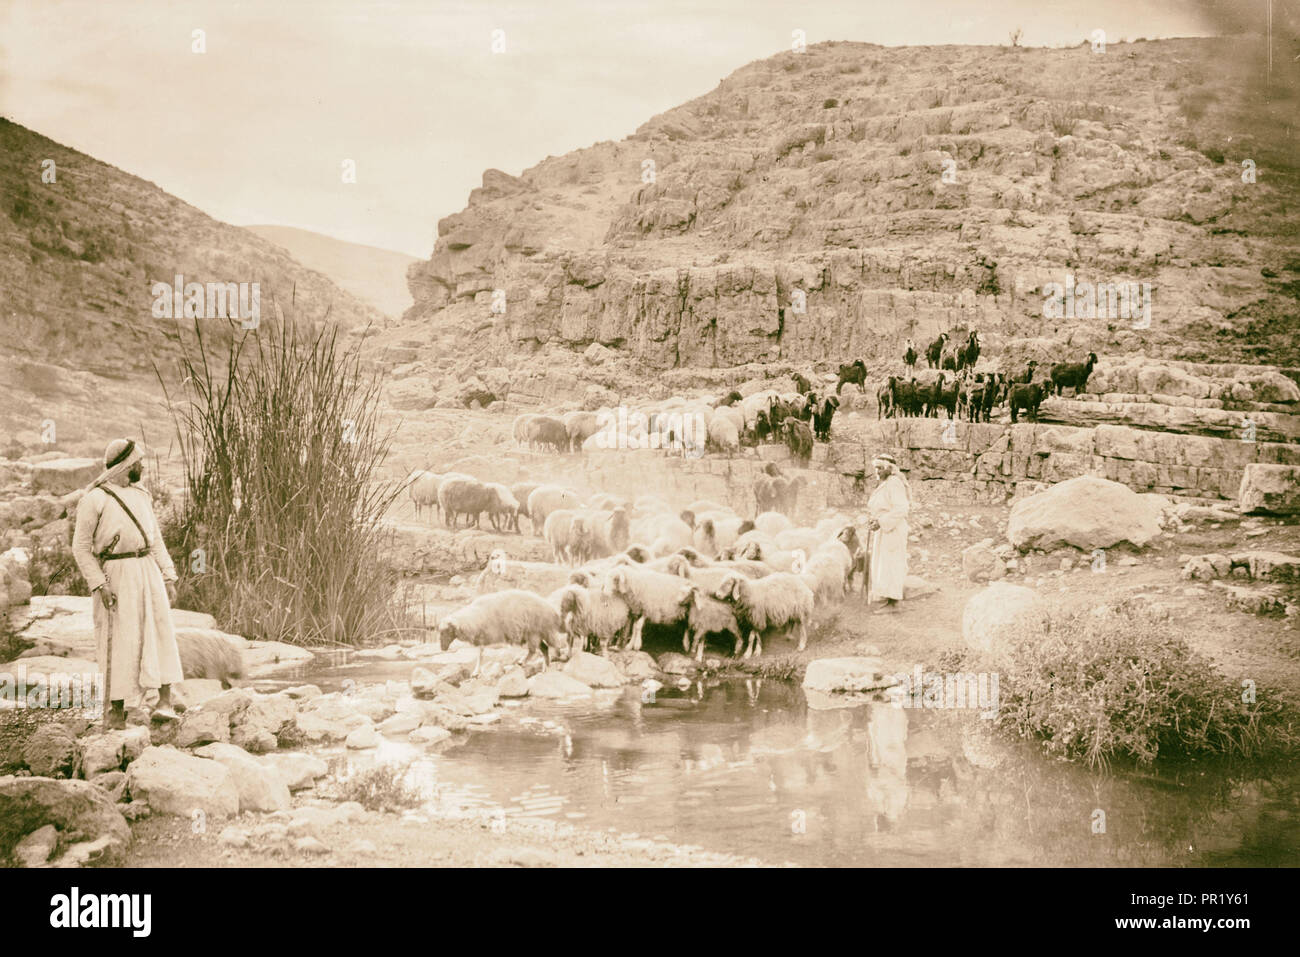 shepherd life illustrating the Twenty-Third Psalm 'He leadeth me in paths of Righteousness'. 1910 - Stock Image